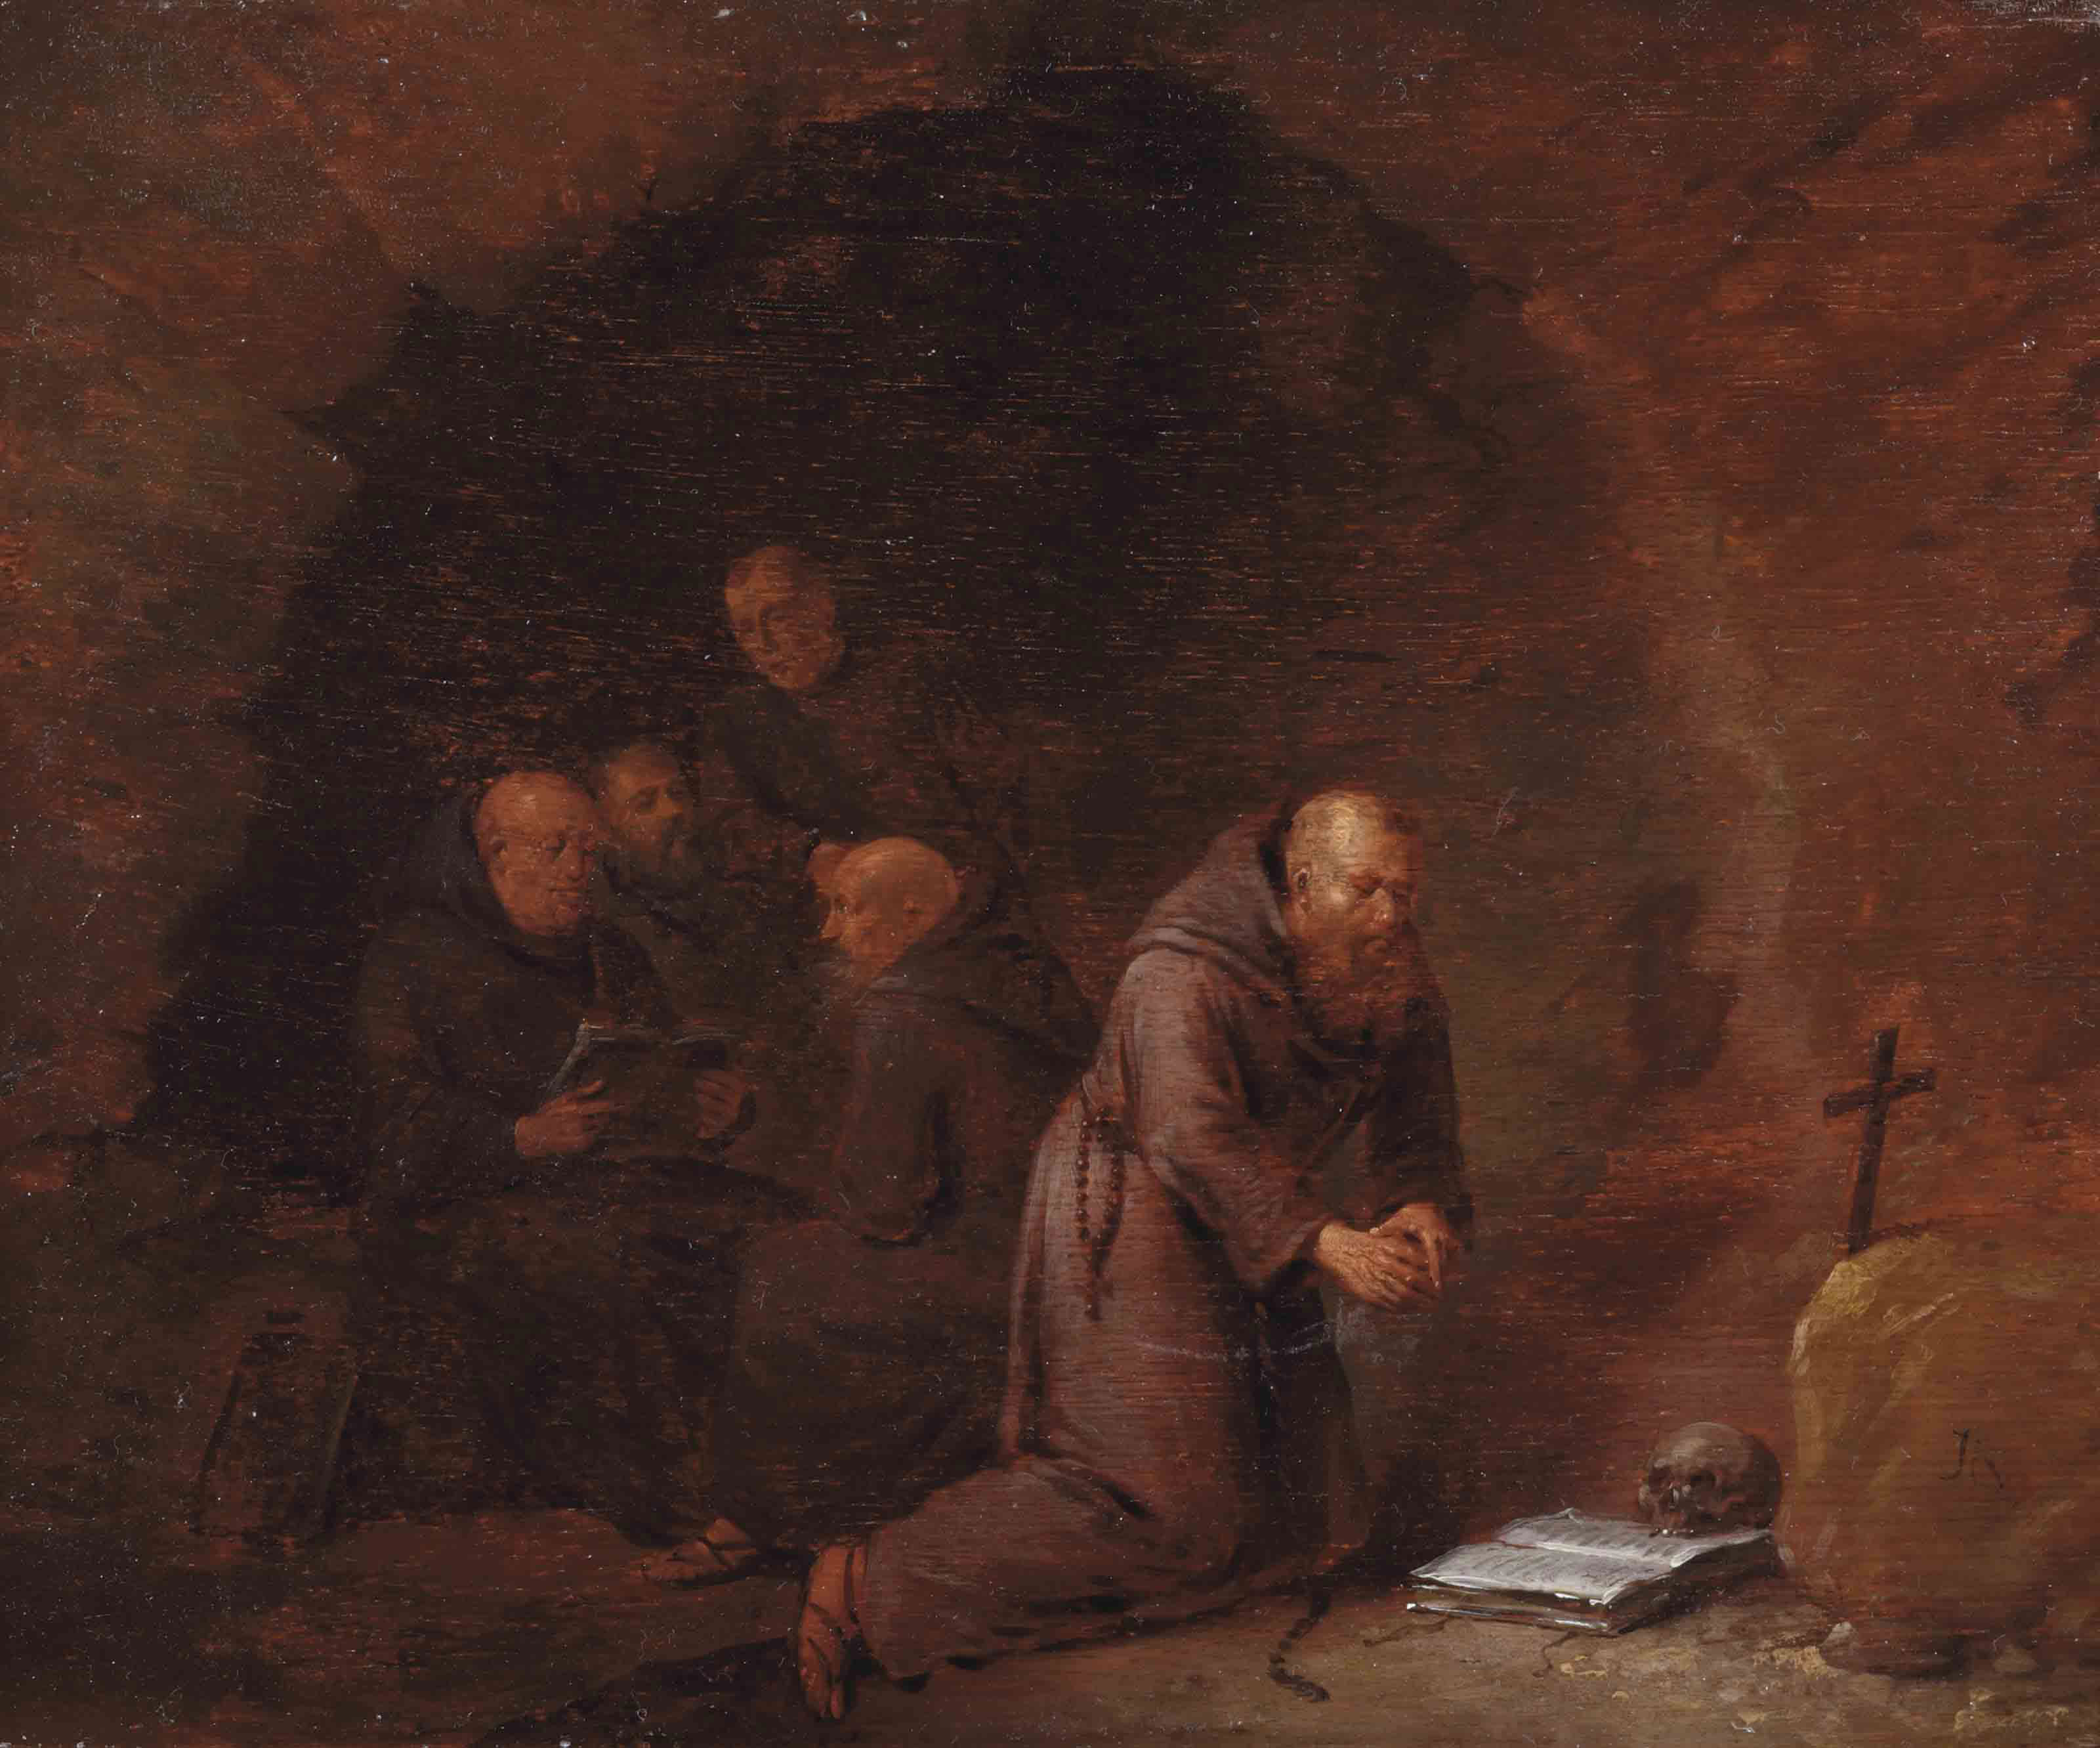 A group of hermit monks in a grotto